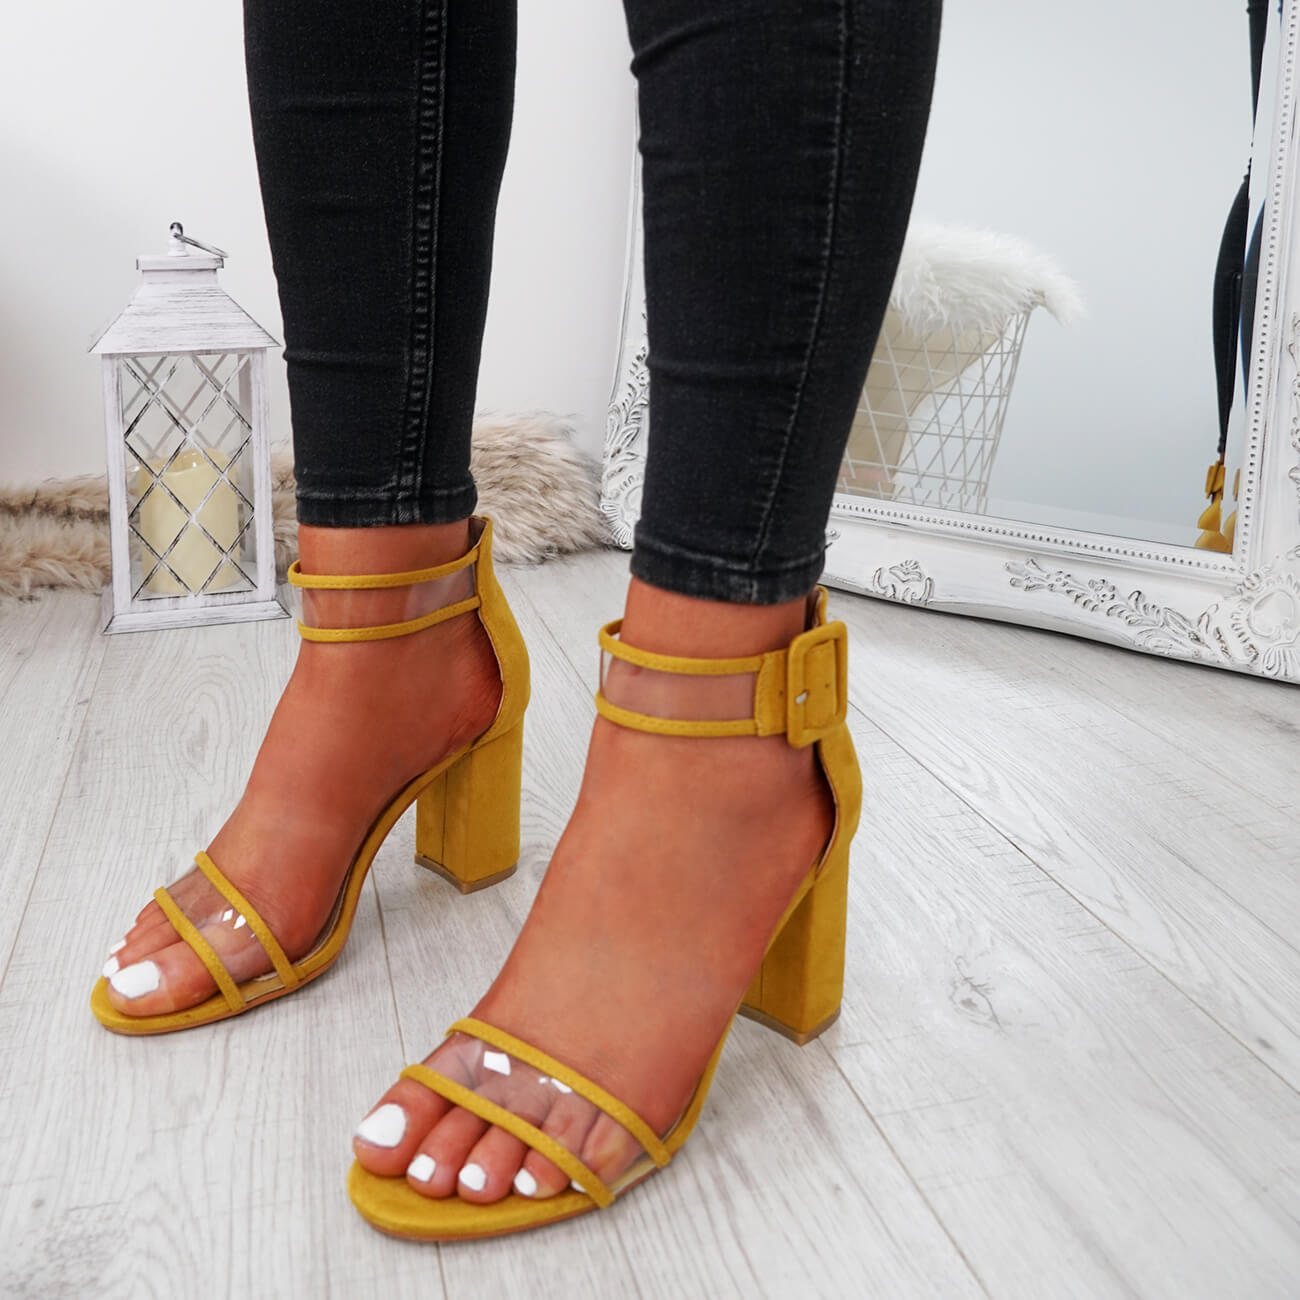 WOMENS-LADIES-ANKLE-STRAP-PEEP-TOE-HIGH-BLOCK-HEEL-SANDALS-FASHION-SHOES thumbnail 38